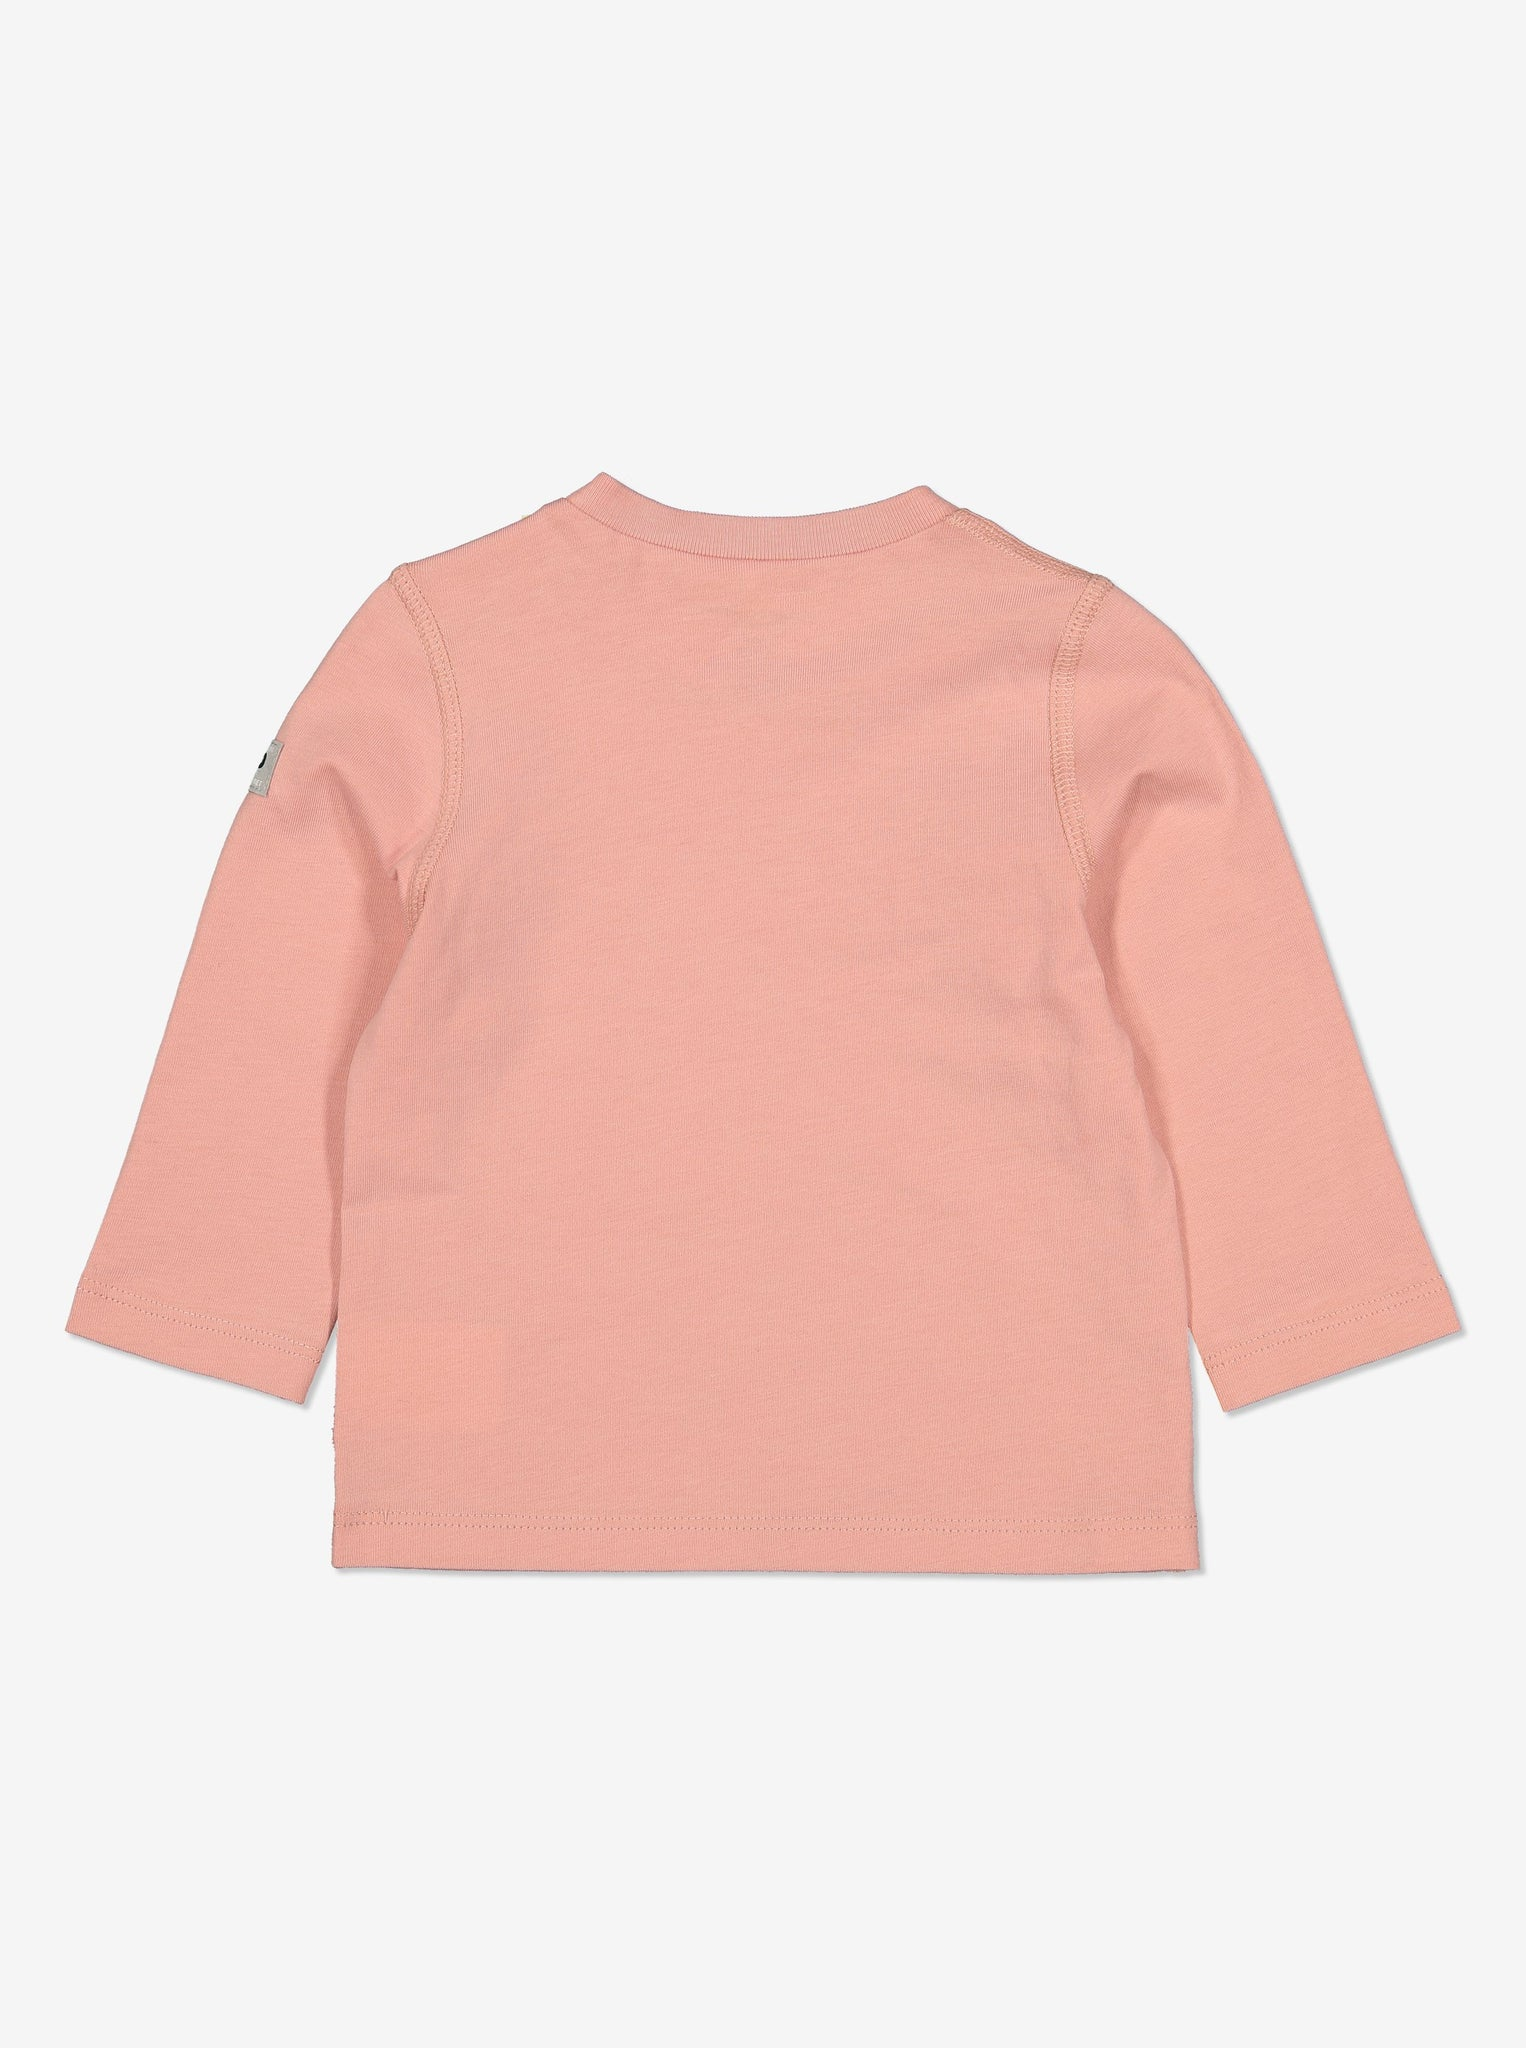 Organic Baby Top-Girl-2m-1y-Pink